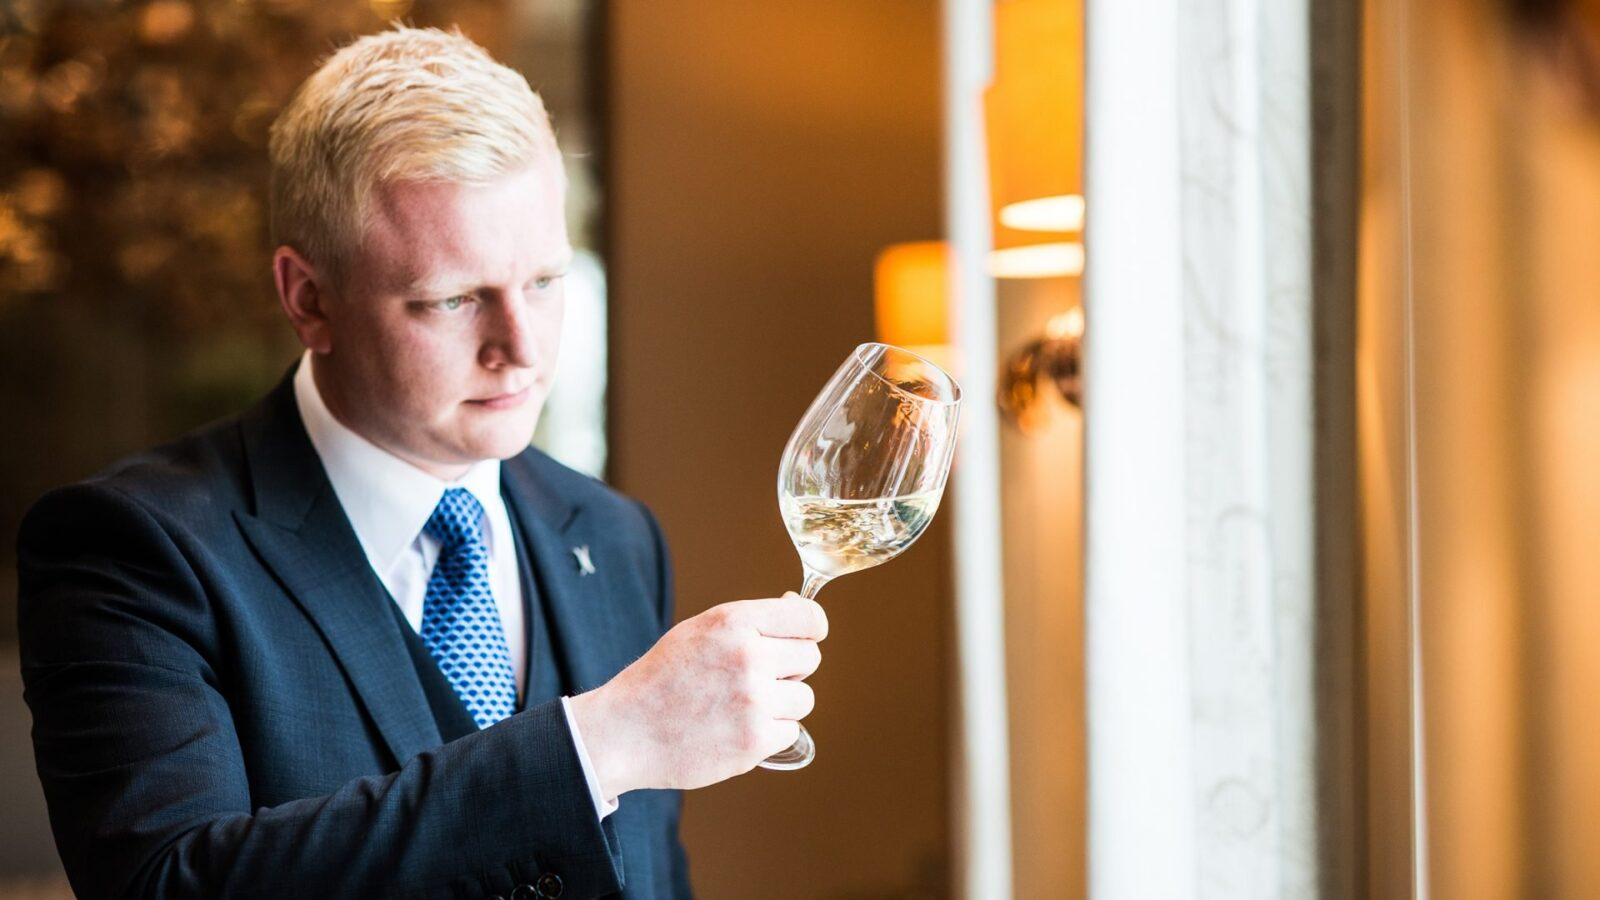 The impeccable standards of Dorchester Collection service